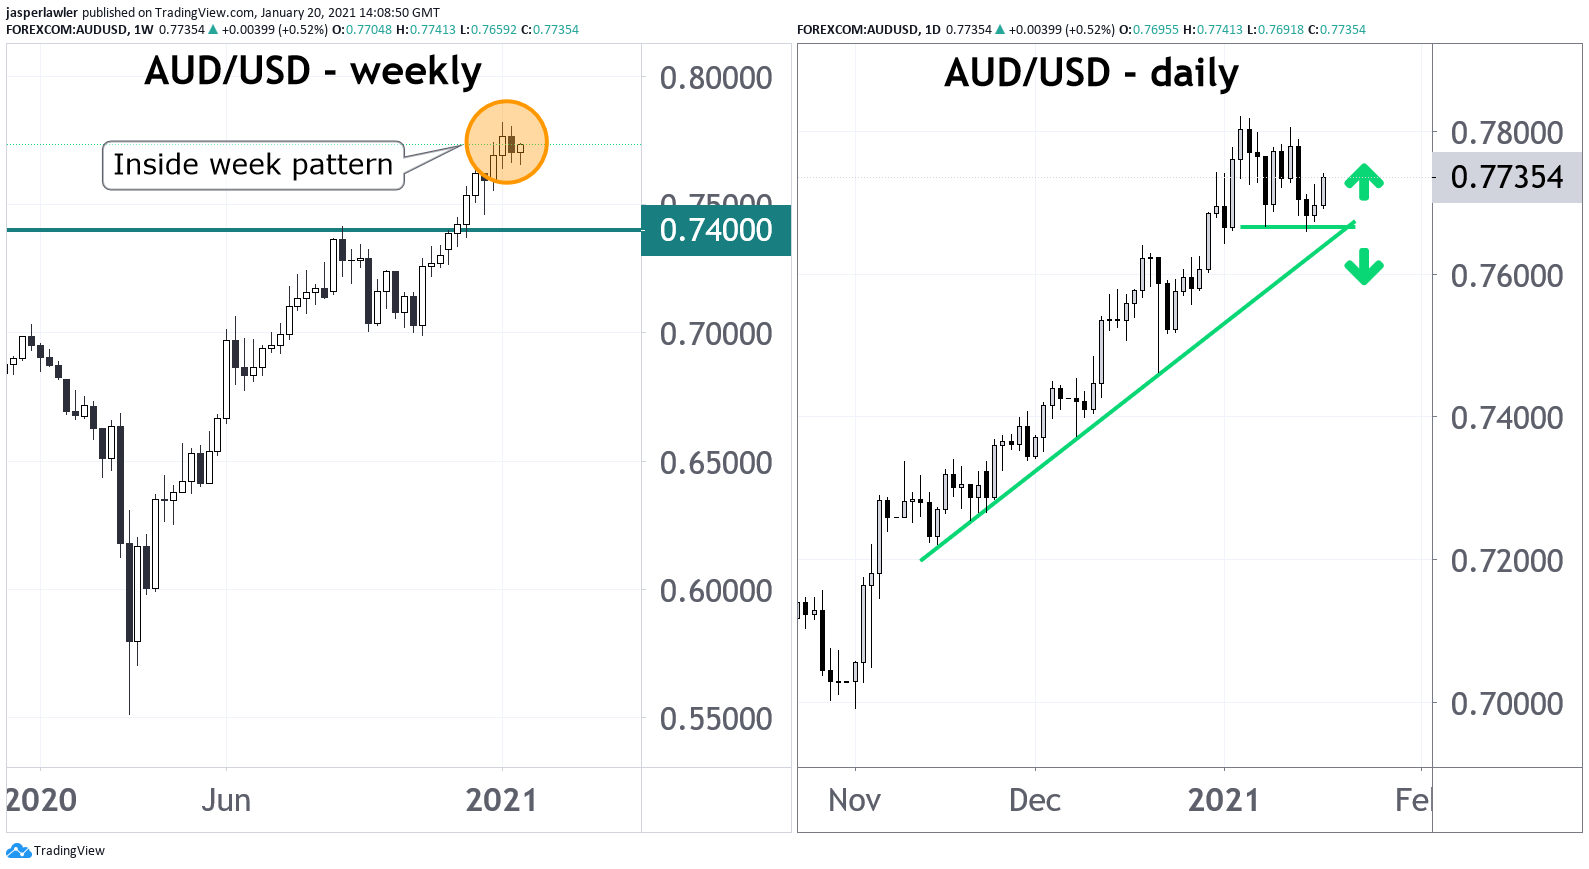 Forex chart of the day: AUD/USD weekly inside bar